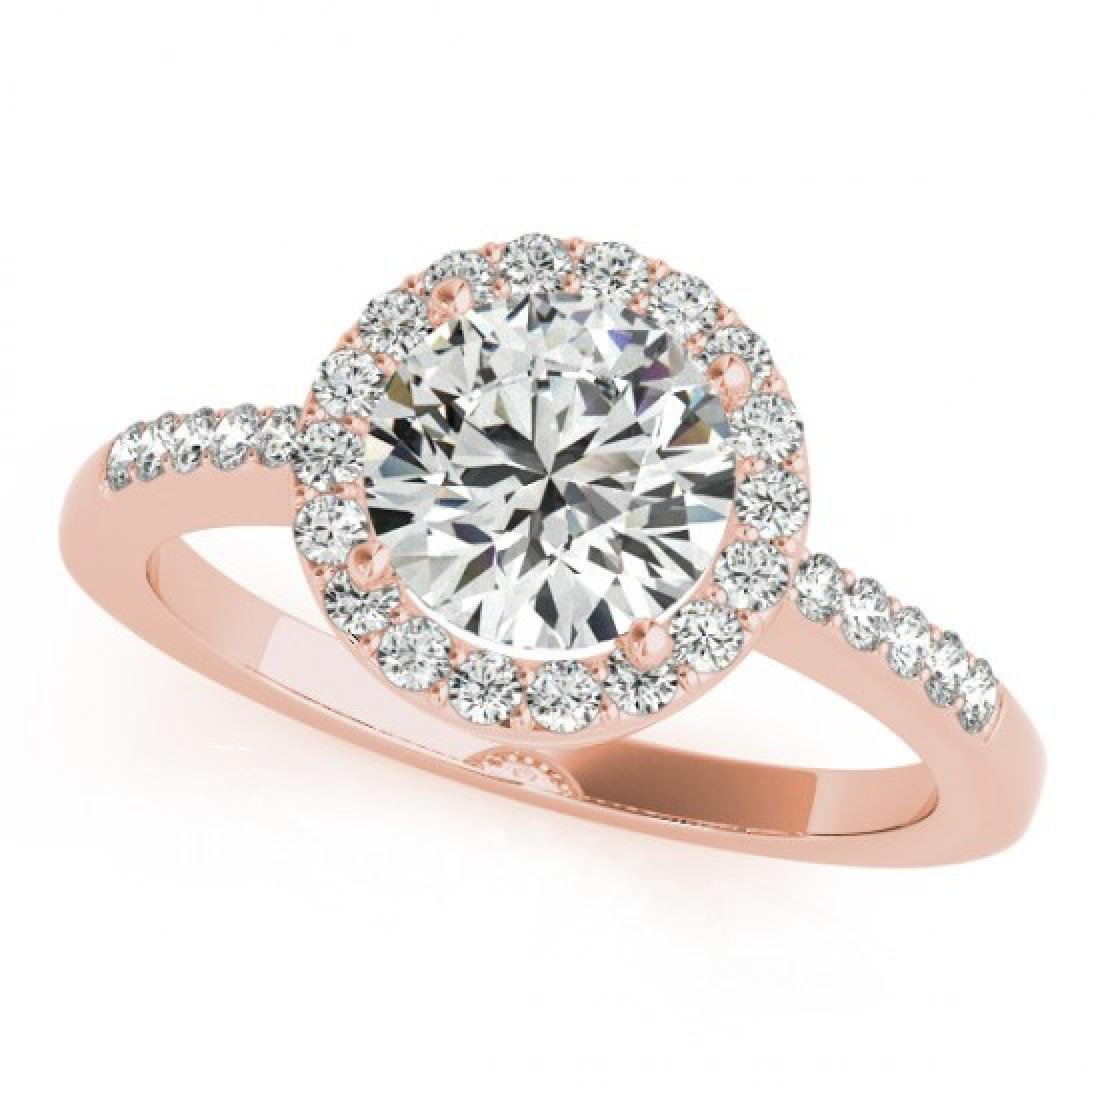 0.5 CTW Certified VS/SI Diamond Solitaire Halo Ring 14K